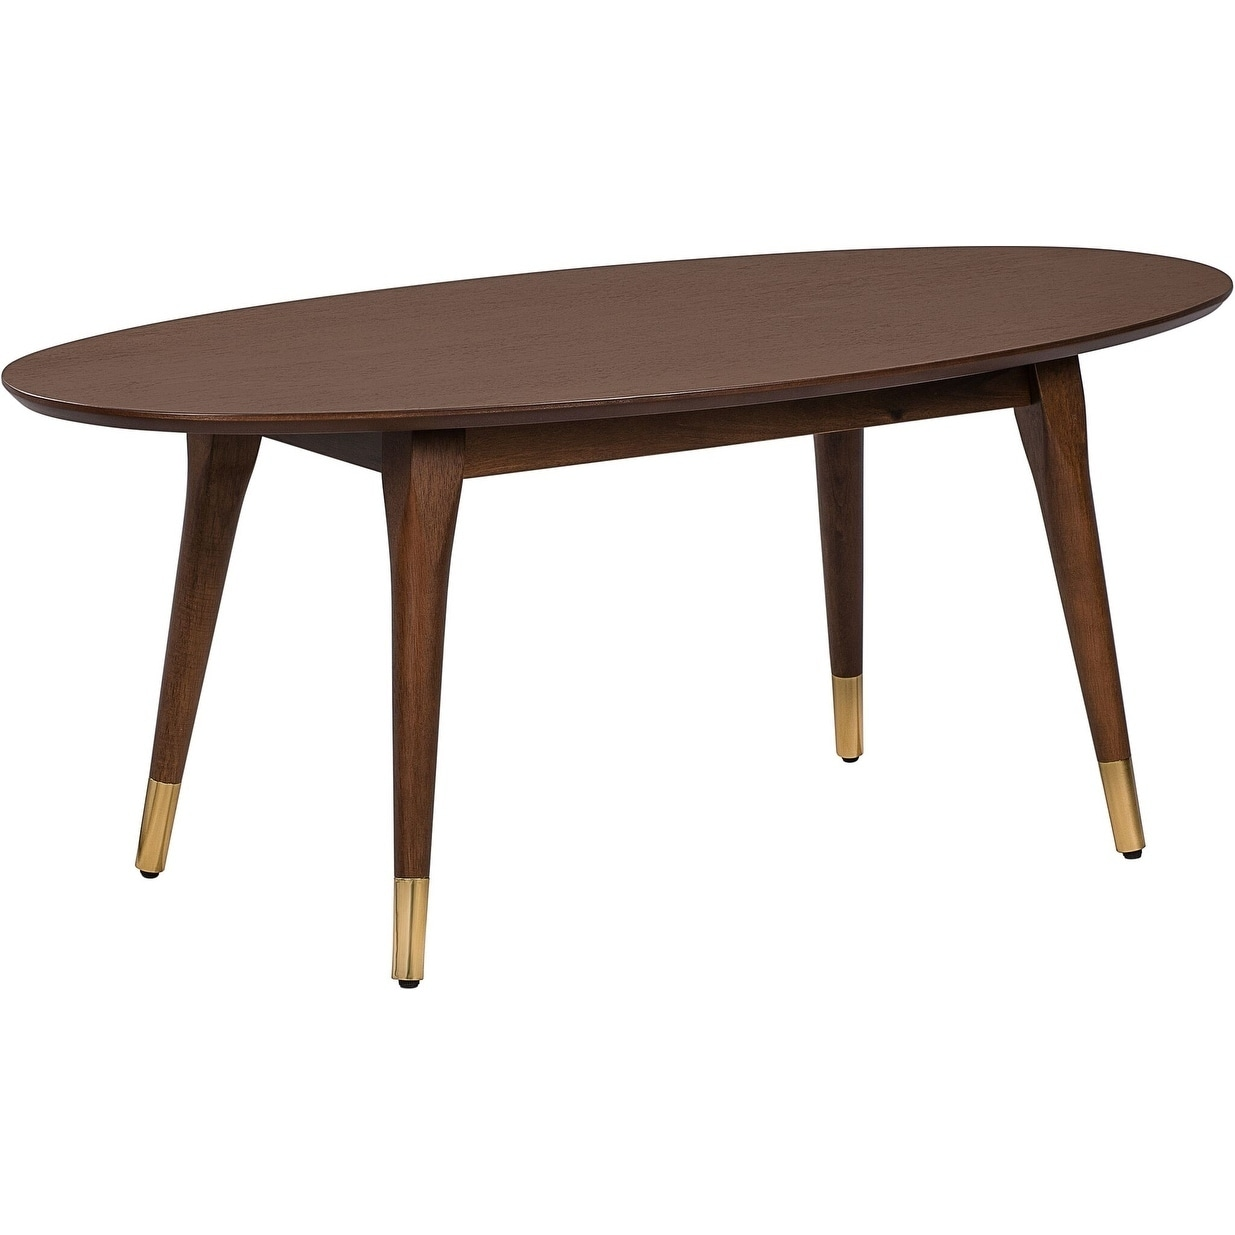 Fine Elle Decor Clemintine Mid Century Oval Table Home Interior And Landscaping Ologienasavecom